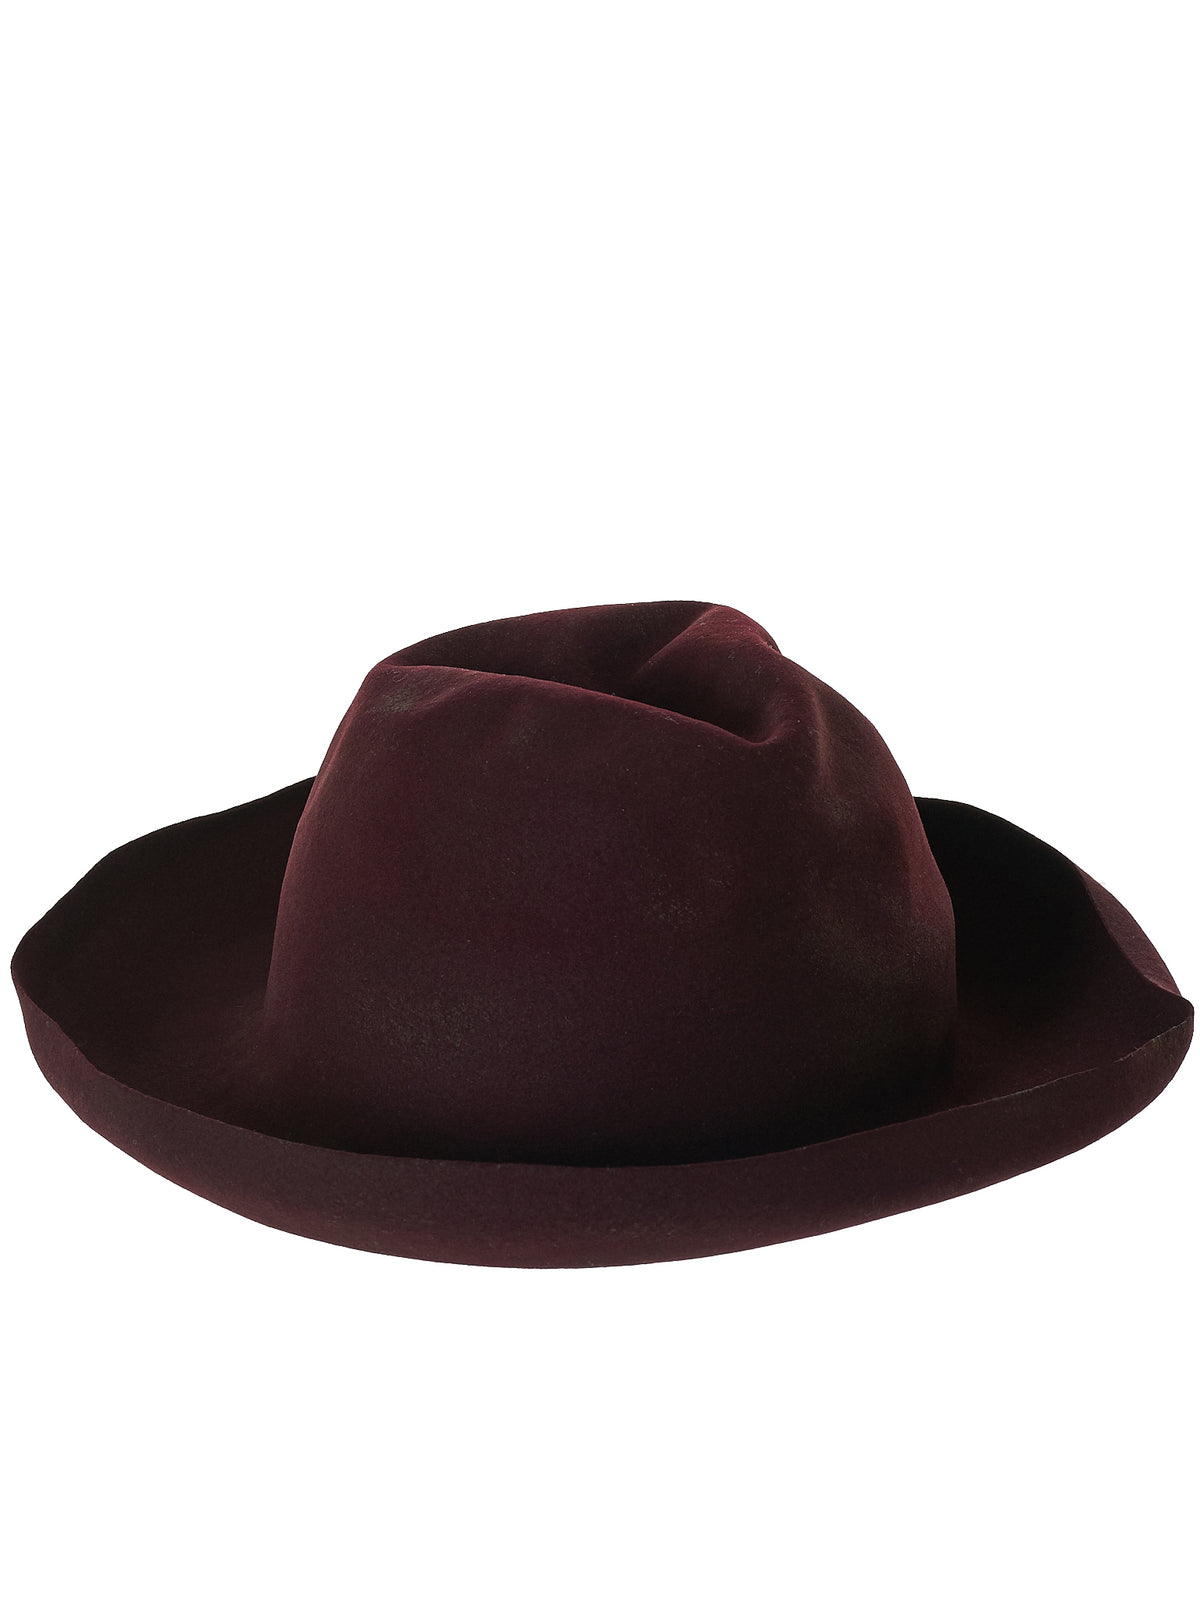 Vintage Crushed Felt Hat (OOAKFWM18-07-WINE)